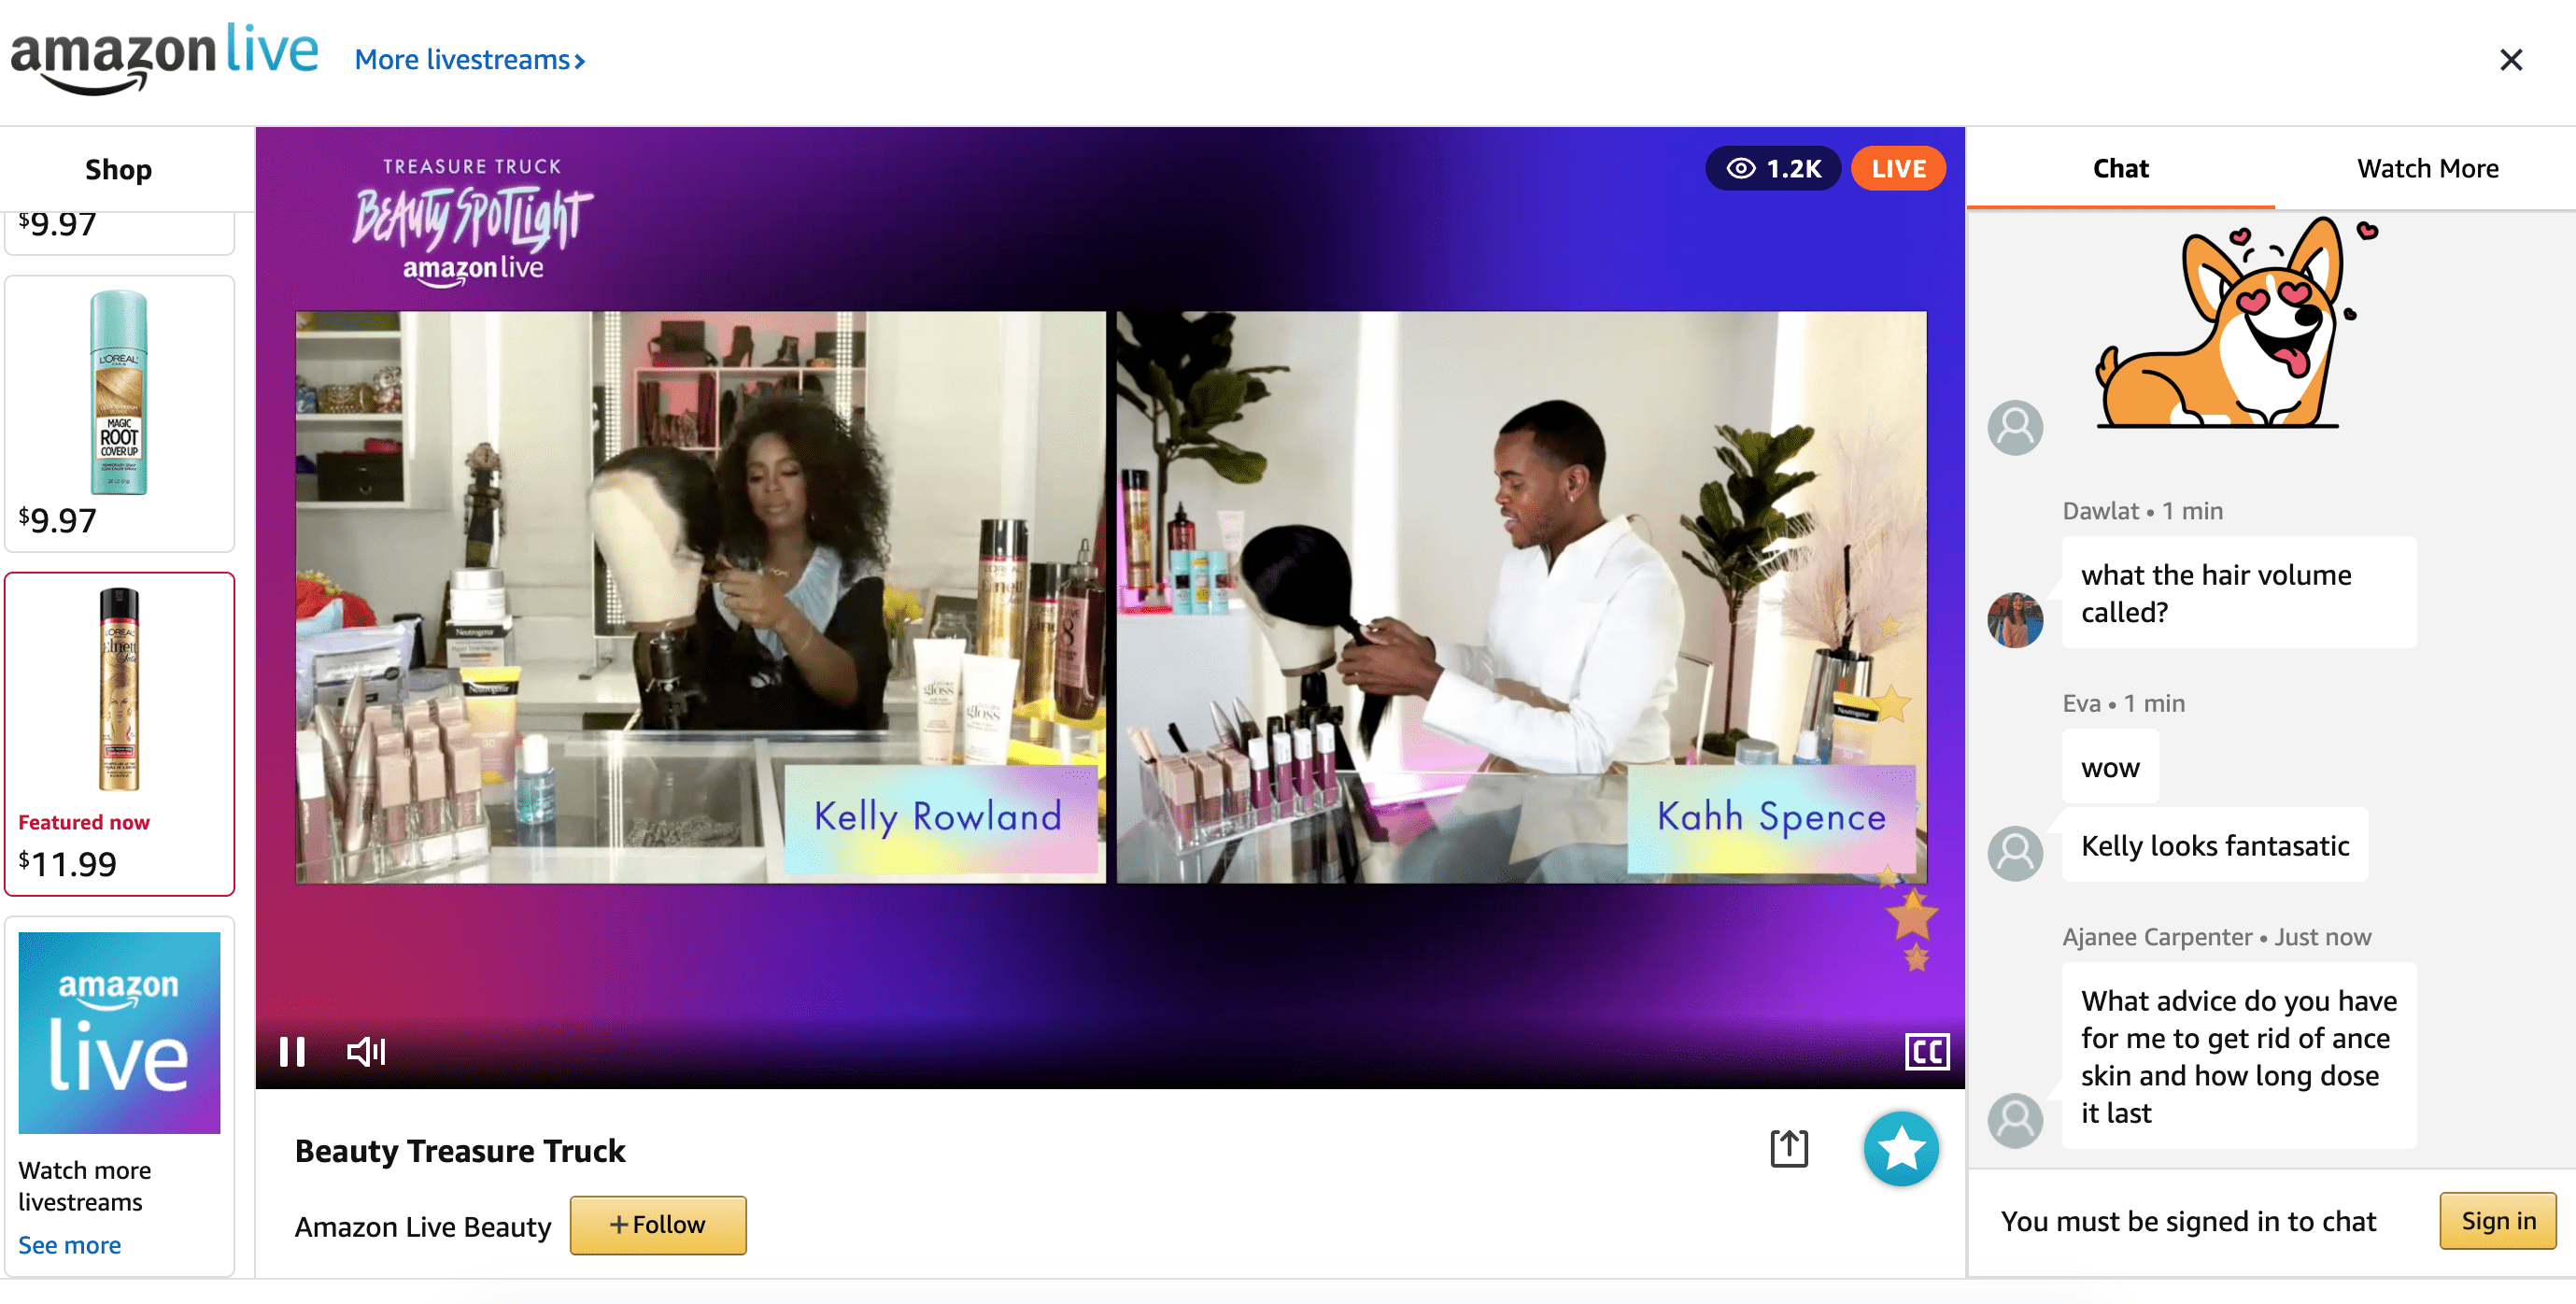 screenshot of kelly rowland product demonstration in livestream brand experience